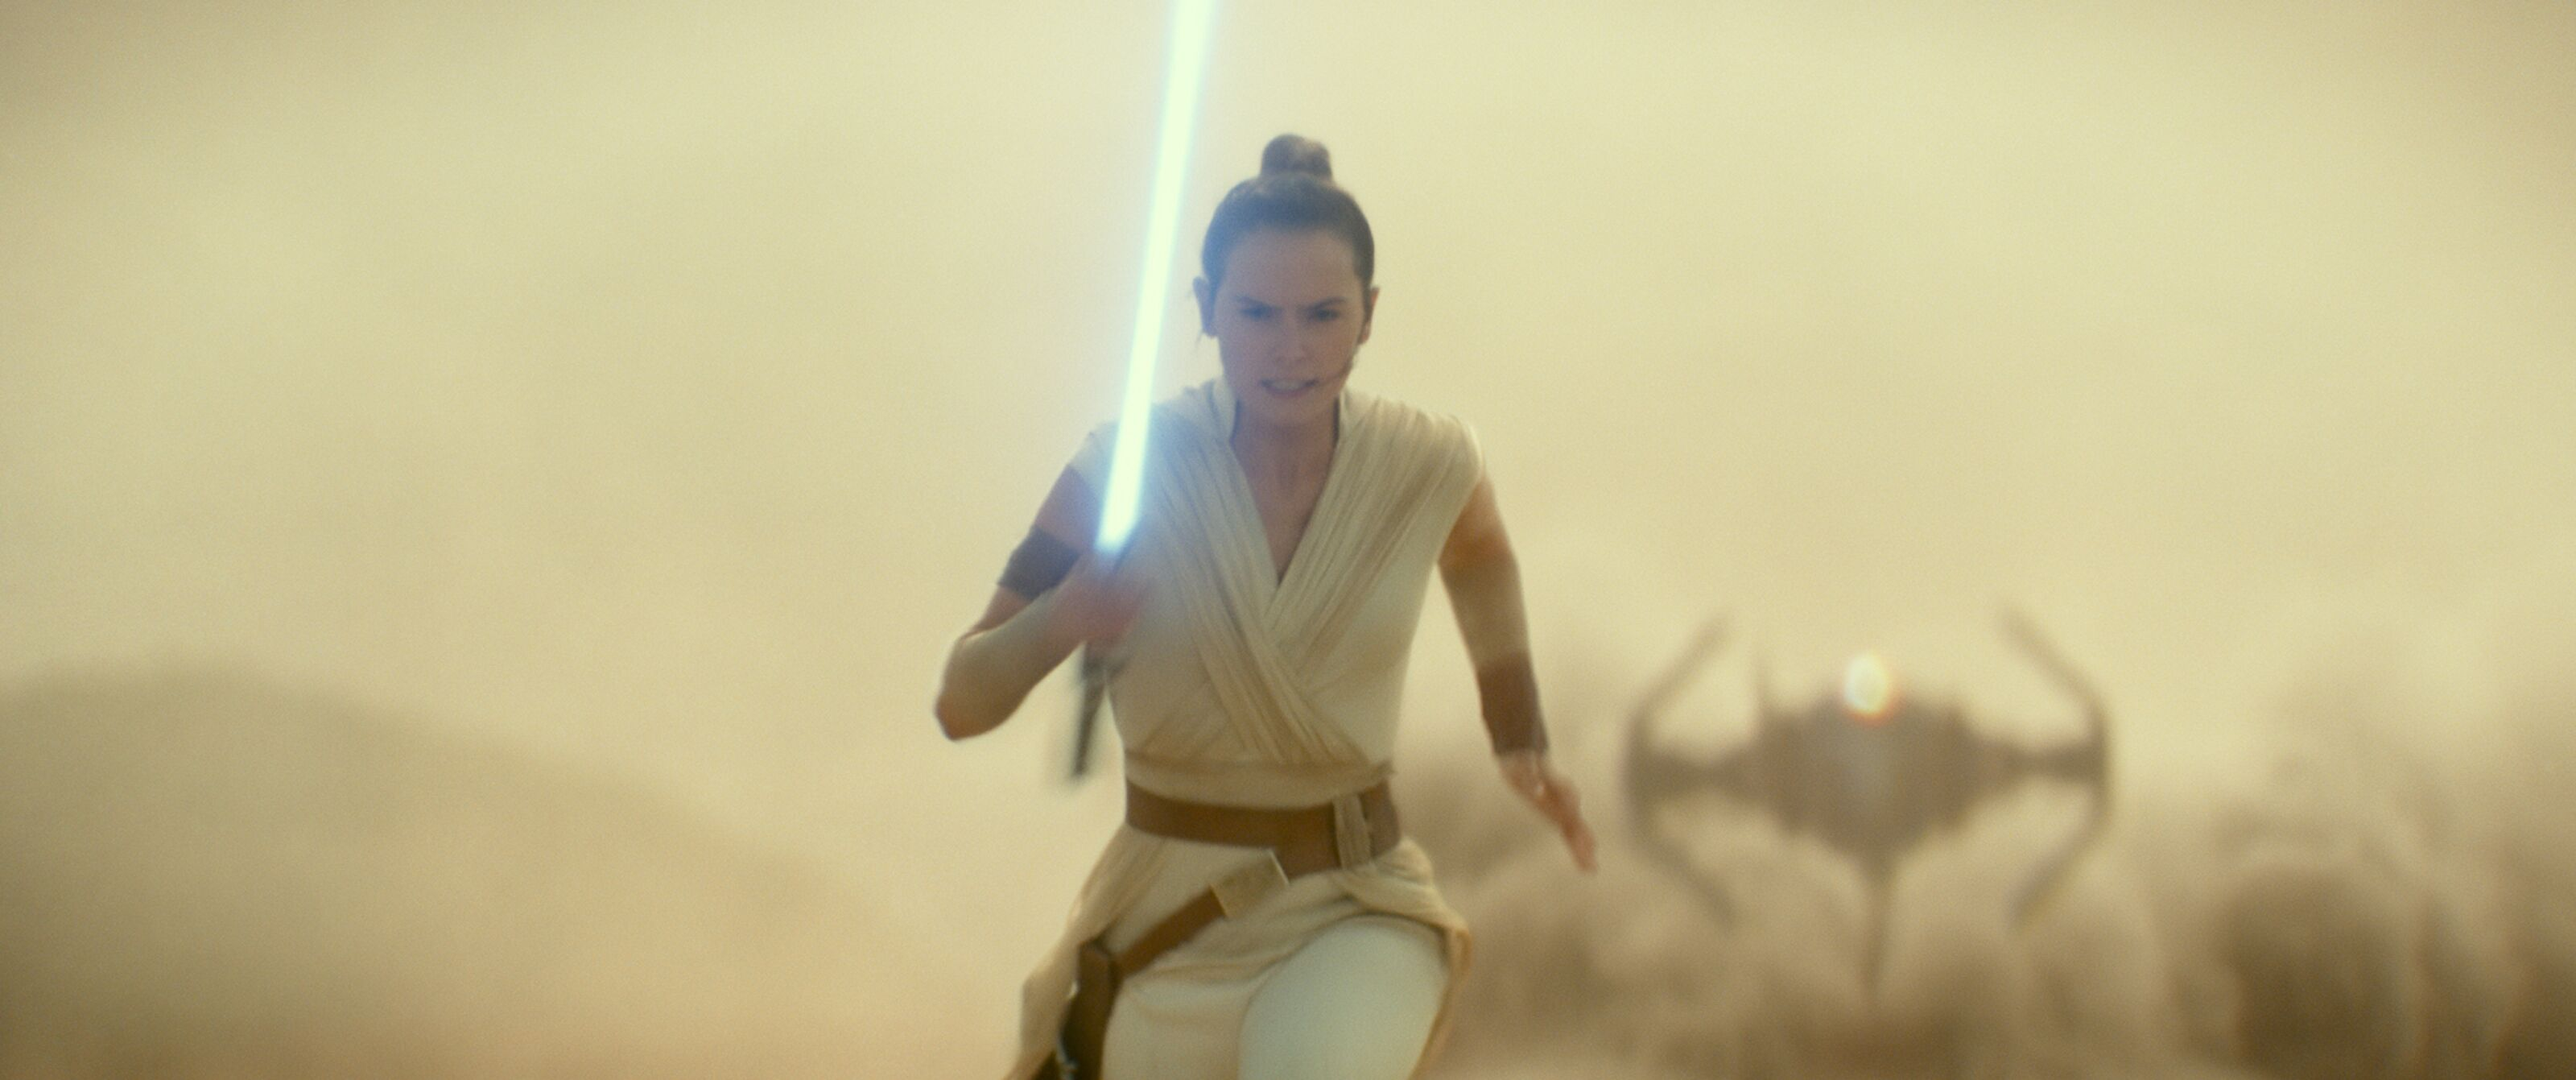 Star Wars Episode IX rumor: The Rise of Skywalker will unveil a new Force power